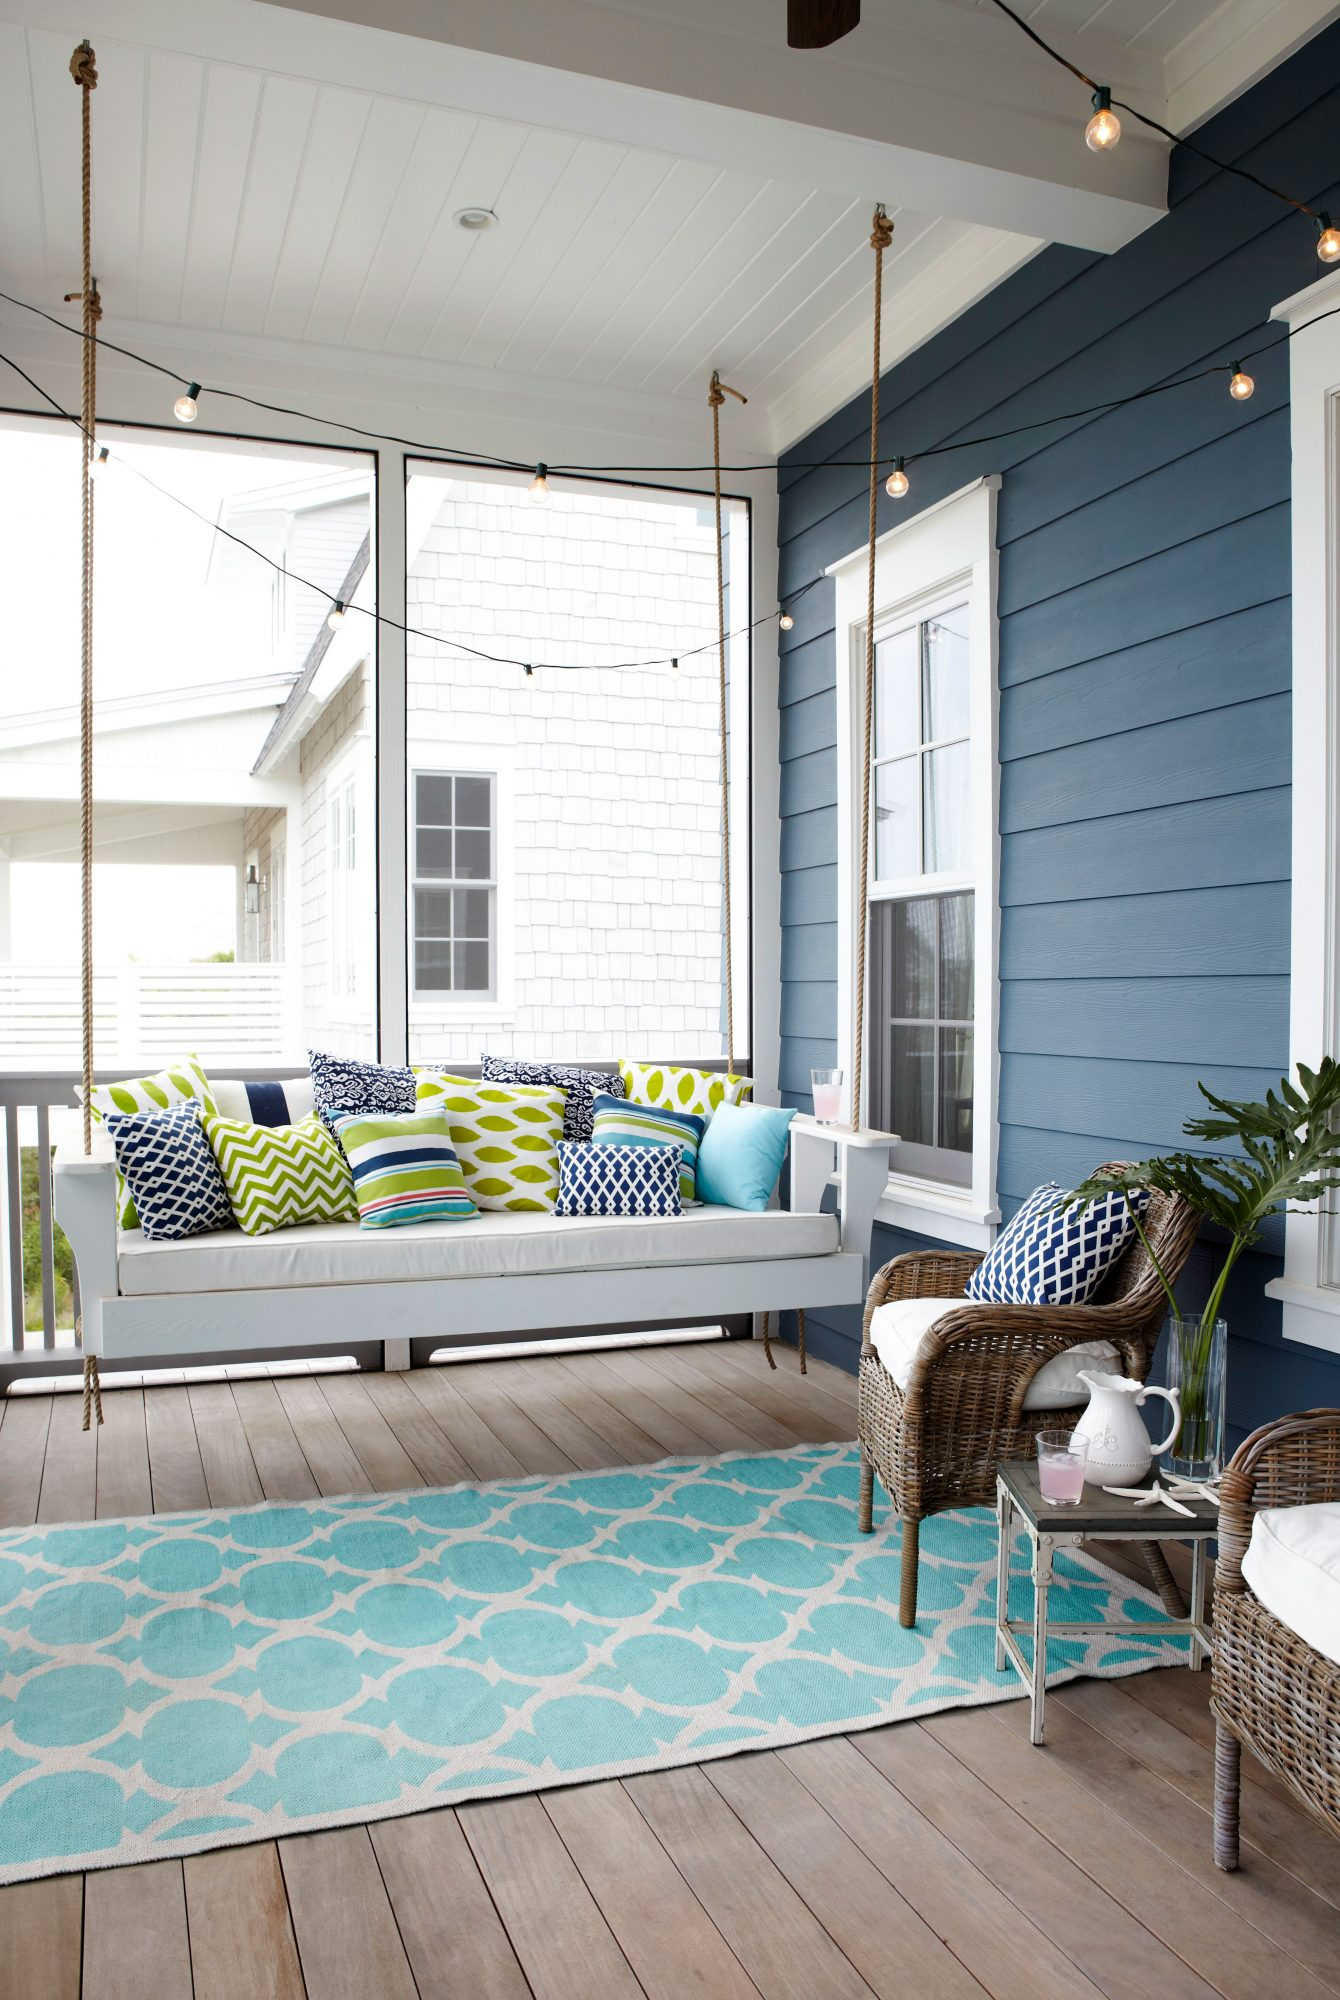 This Watersound, Florida, screened porch is the picture of relaxation, with its hanging daybed outfitted in lime green, navy, and turquoise throw pillows. A string of bistro lights add to the whimsy.